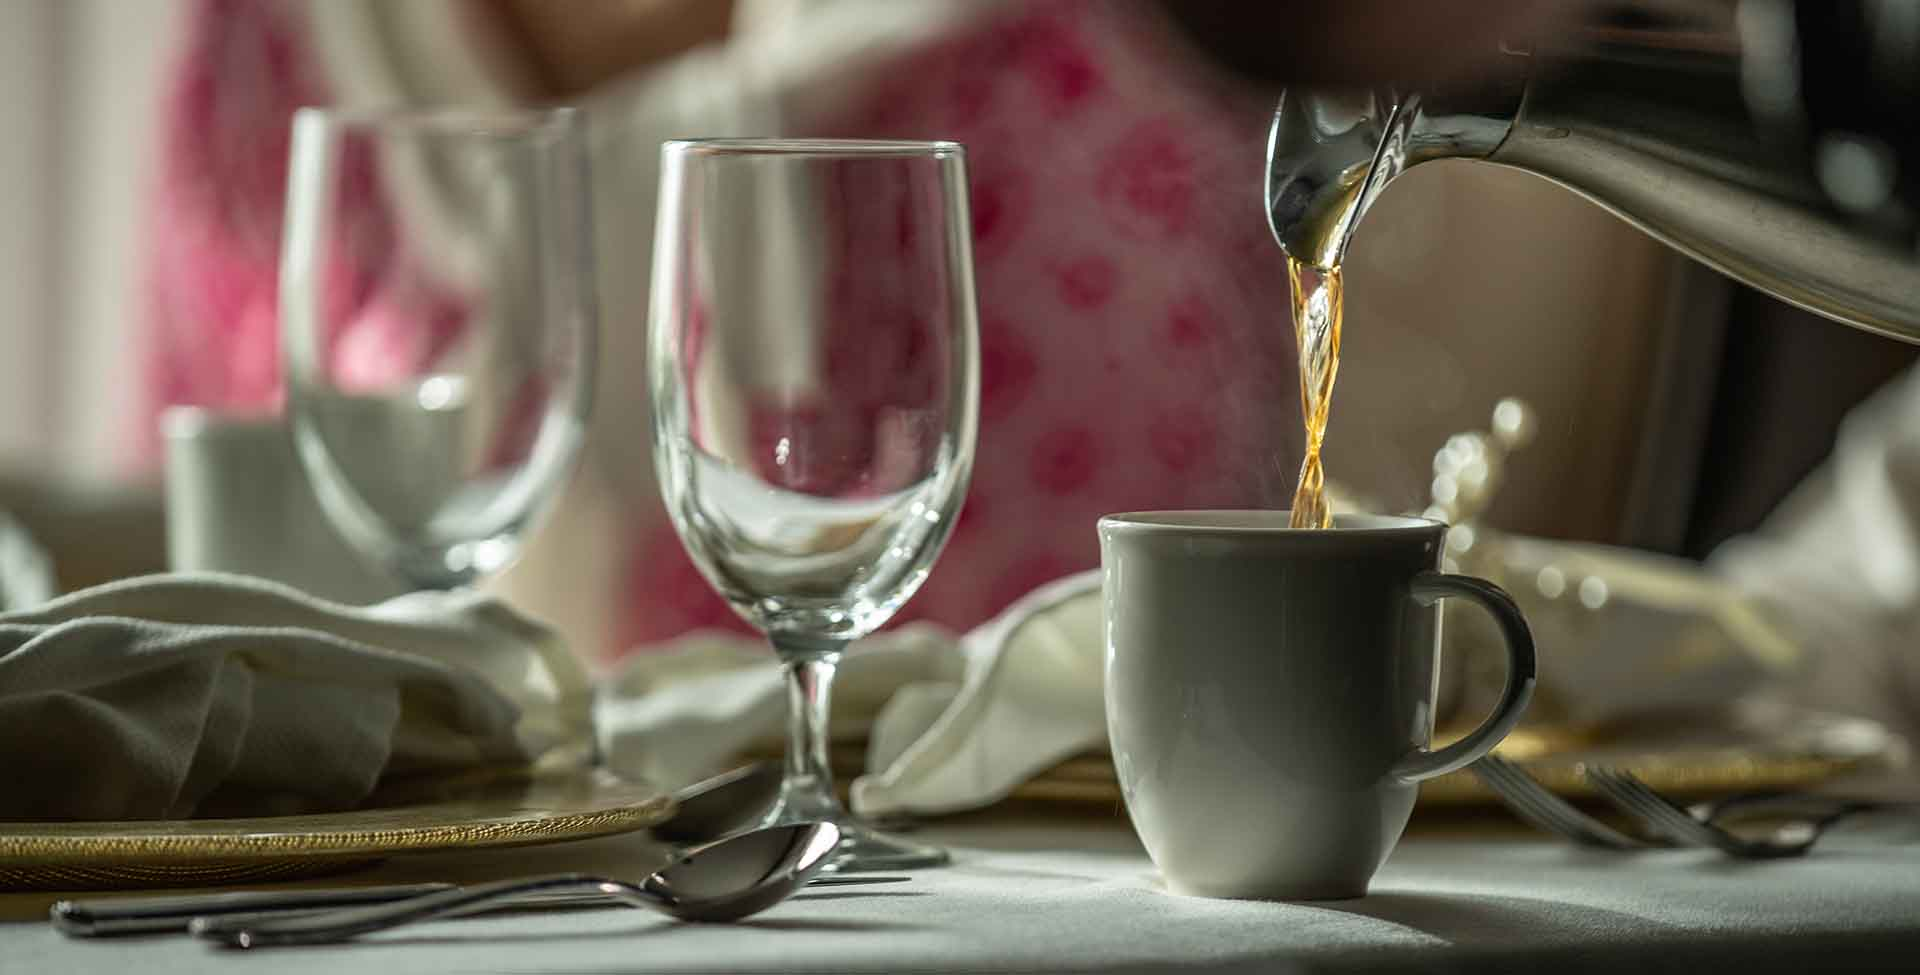 wine glasses and coffee